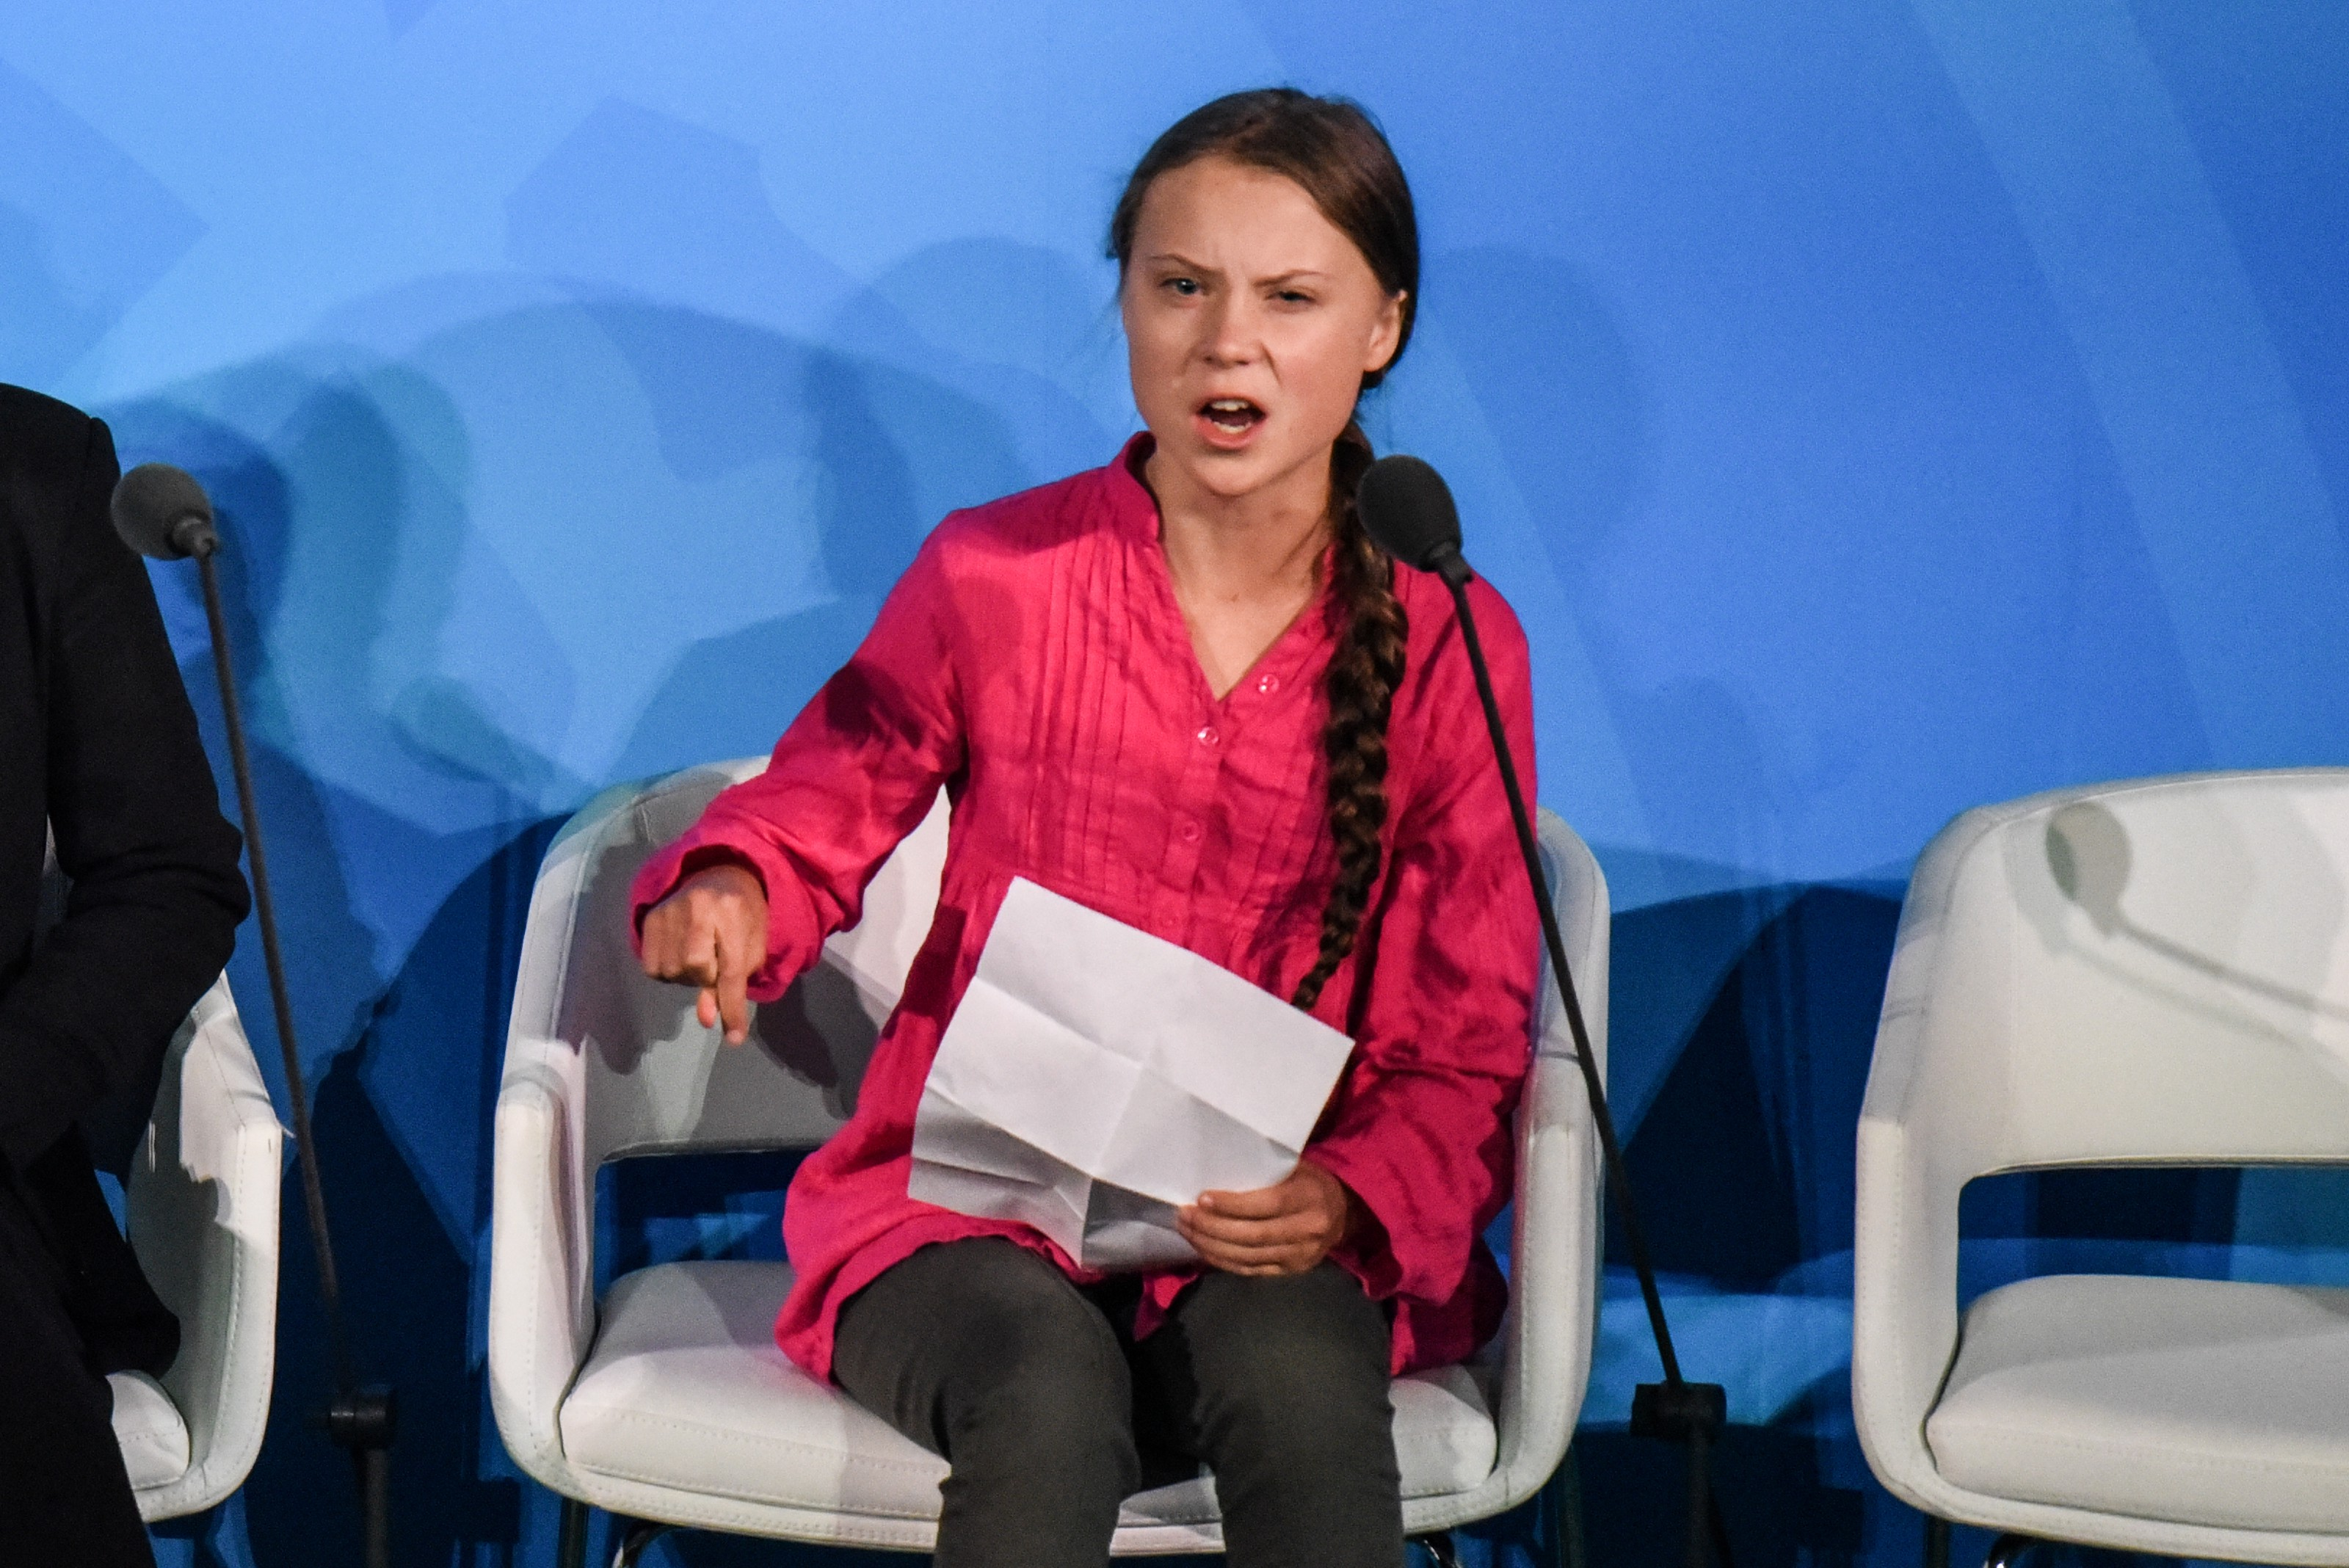 A photo of Greta Thunberg at the Climate Action Summit.